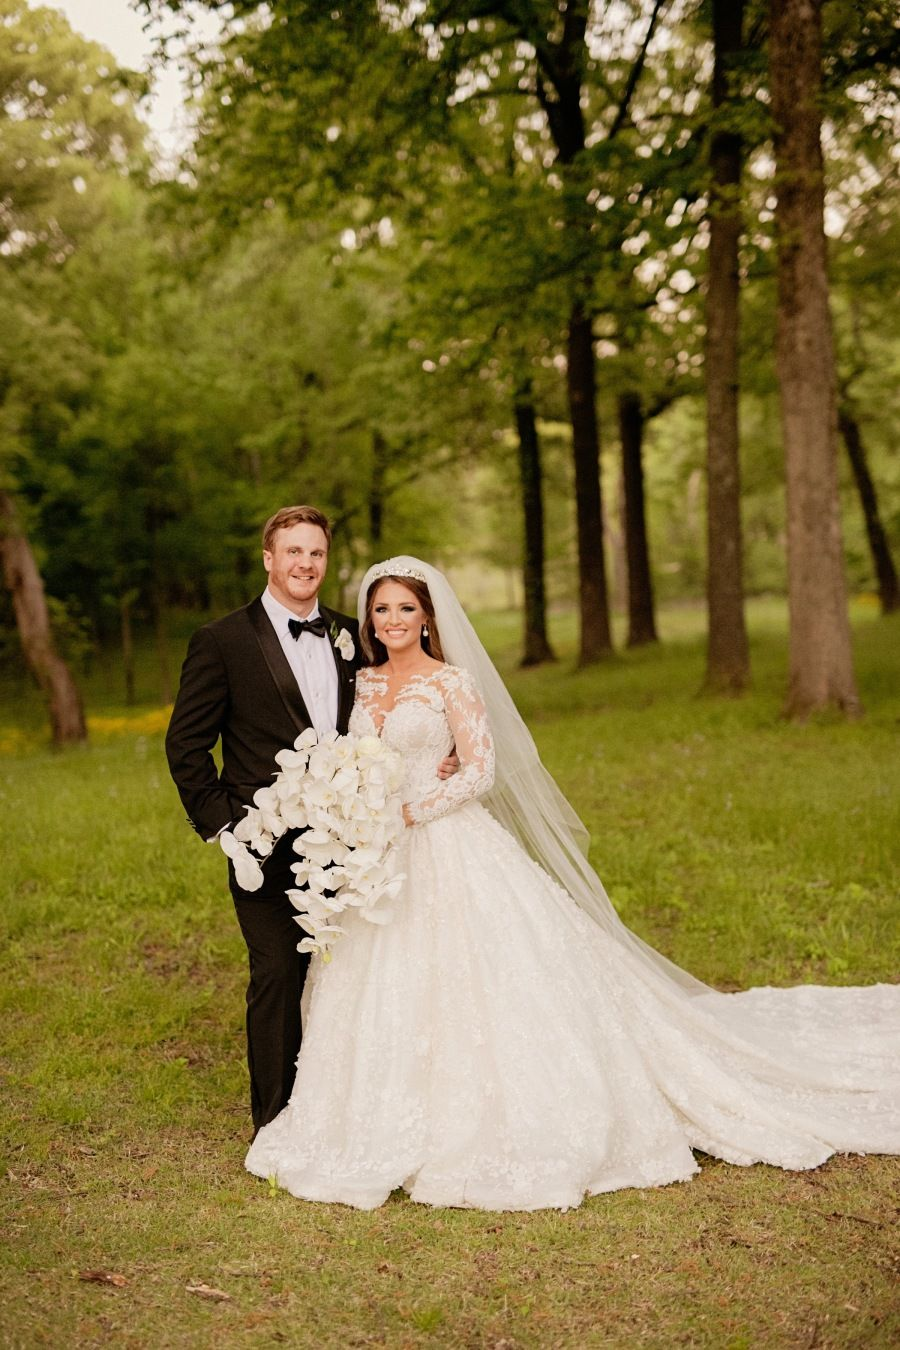 Collins Tuohy of The Blindside Shares Her Wedding Day Wedding